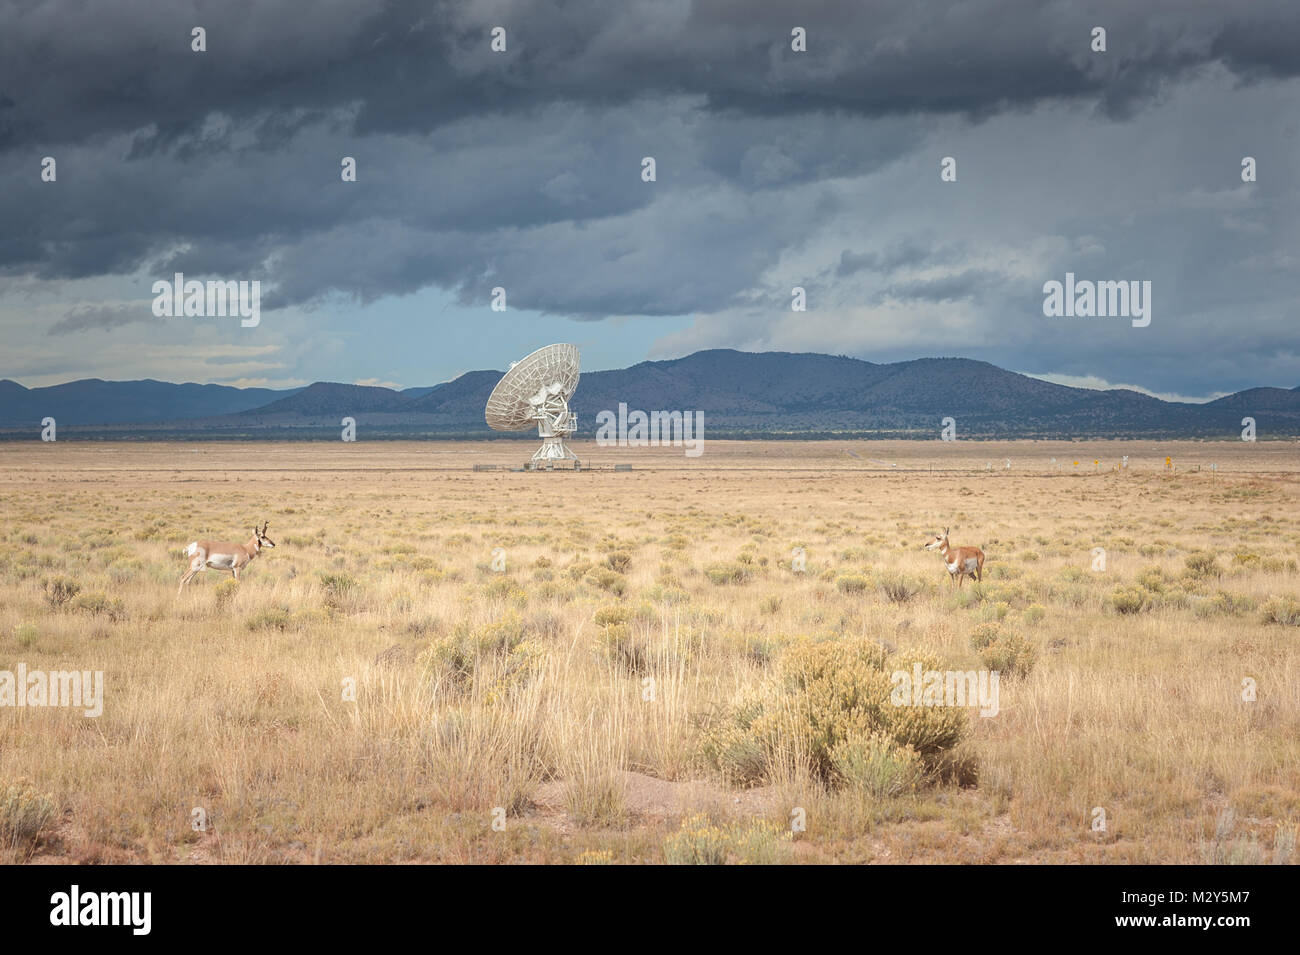 Very Large Array (VLA) Radio Telescopes with pronghorn antelopes in the foreground located at the NRAO Site in Socorro, Stock Photo